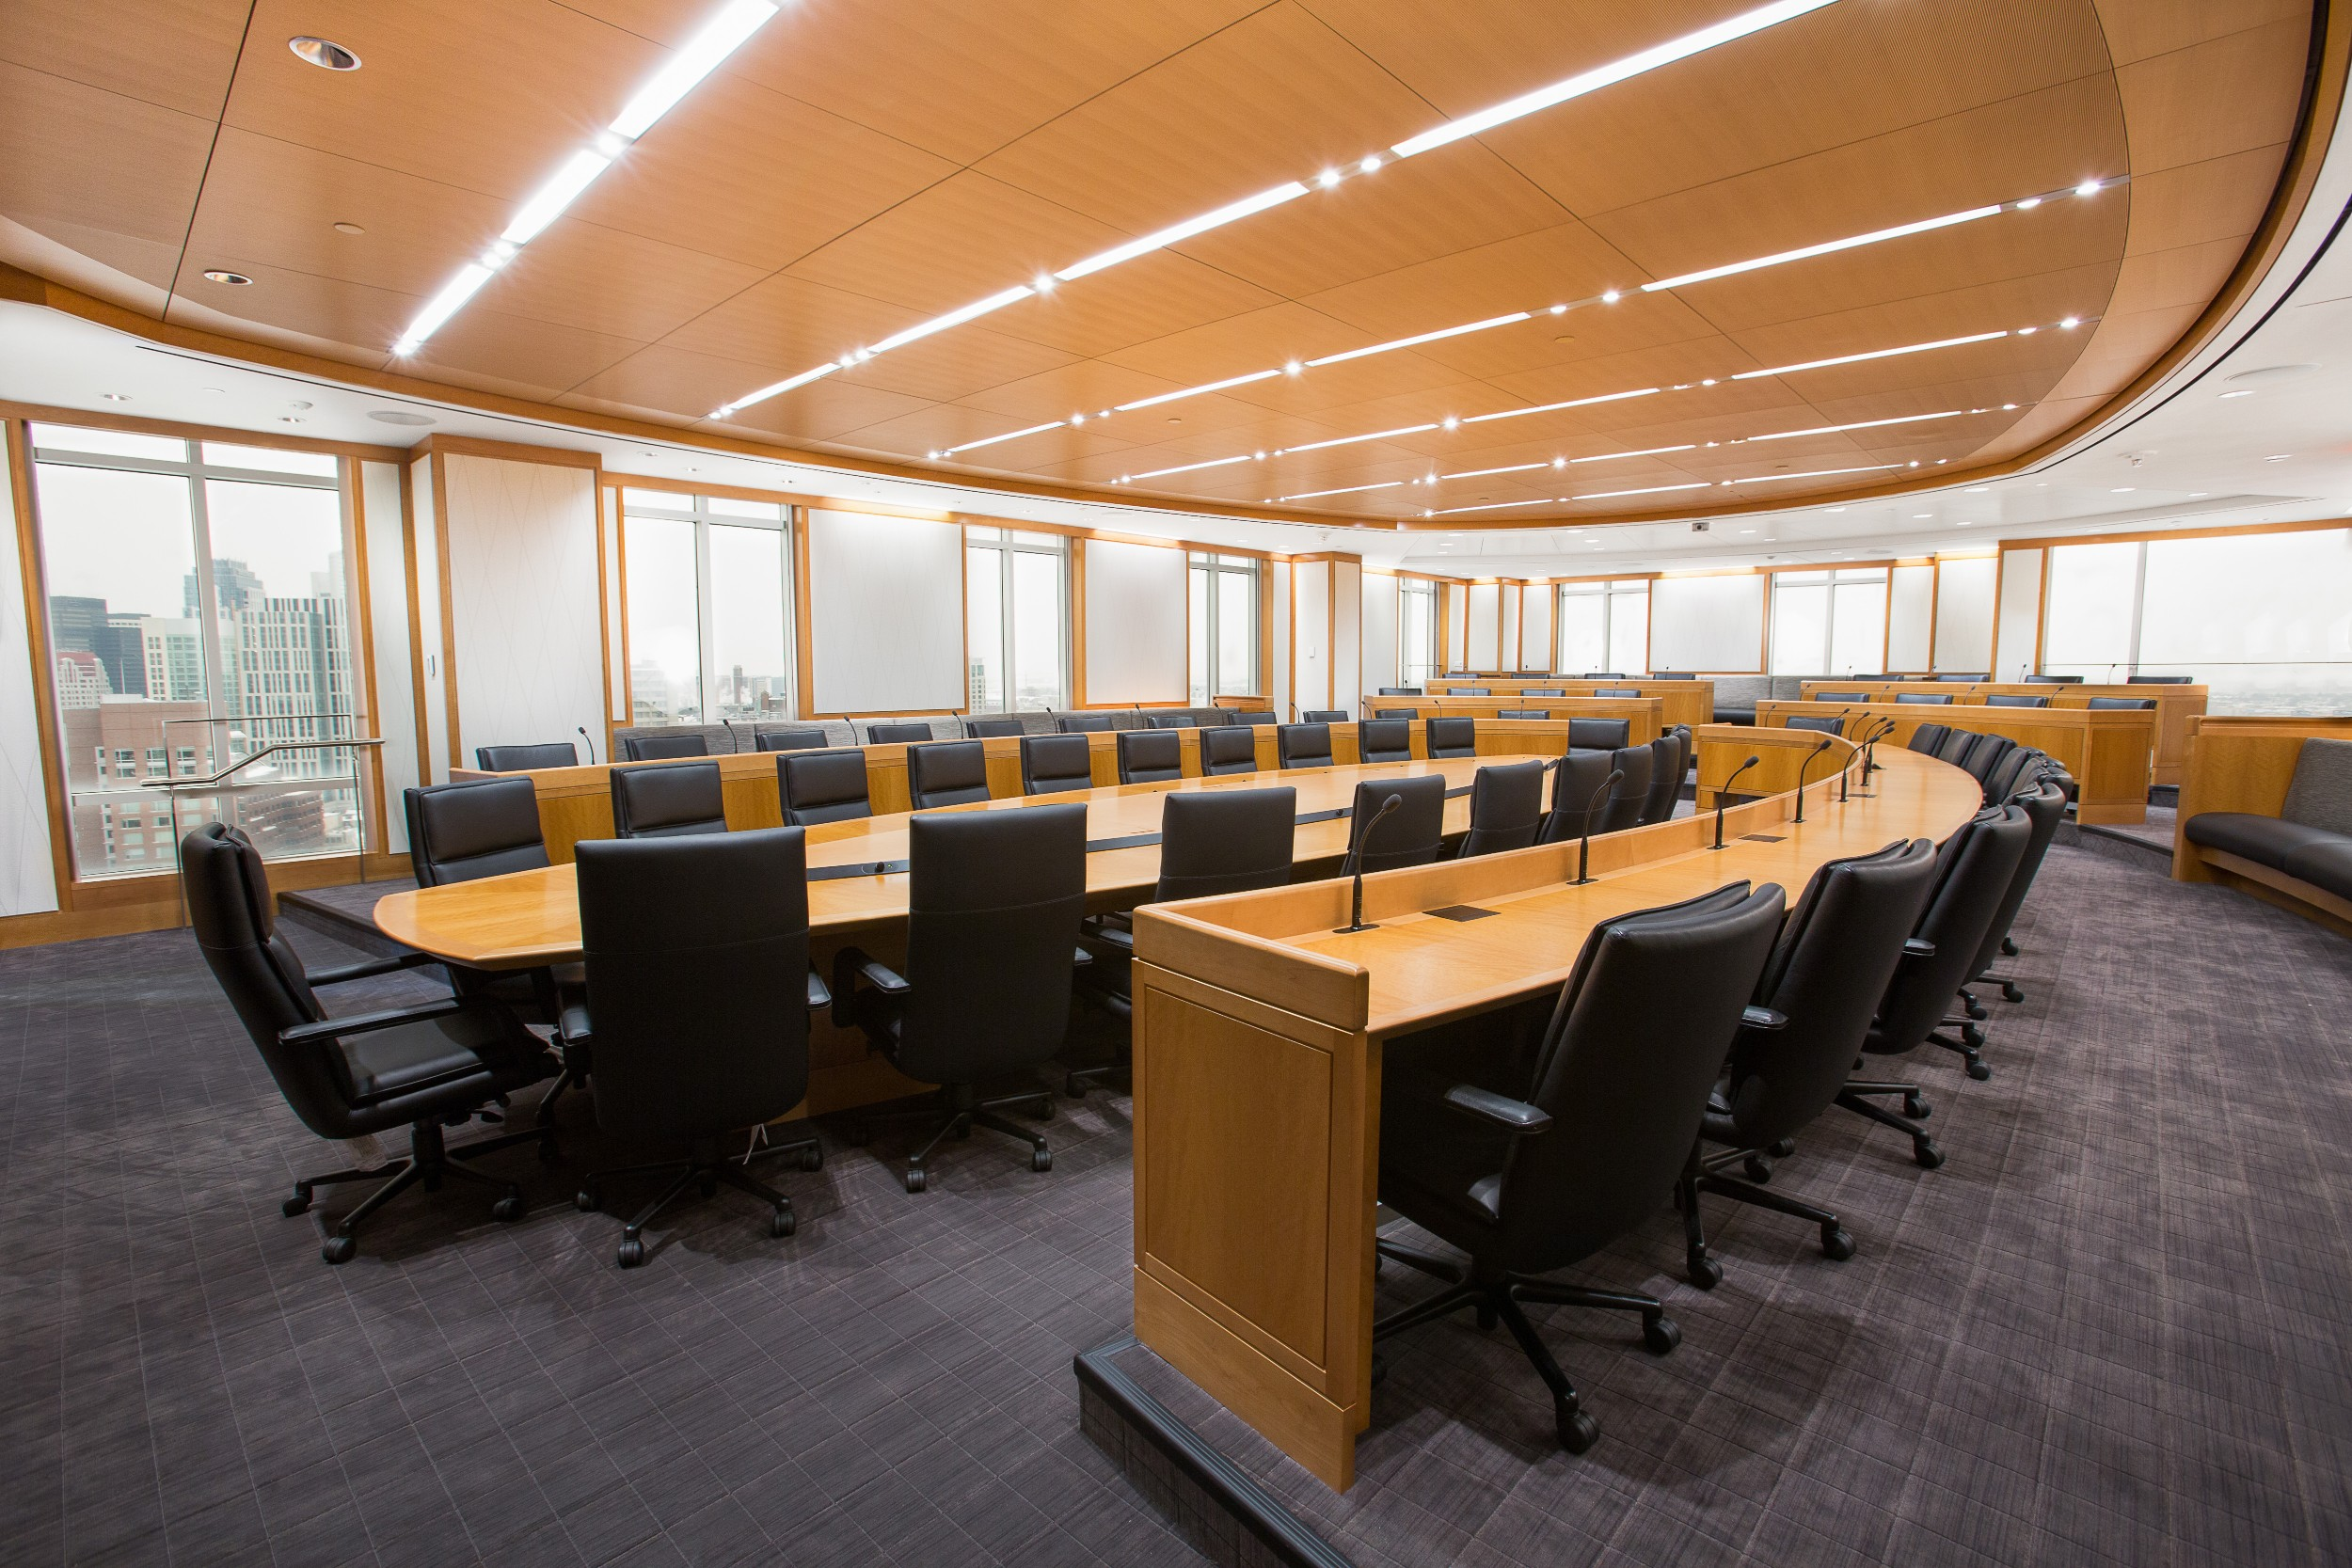 Corderman_Confidential_Office_Interior_Construction_Auditorium_View_3.jpg